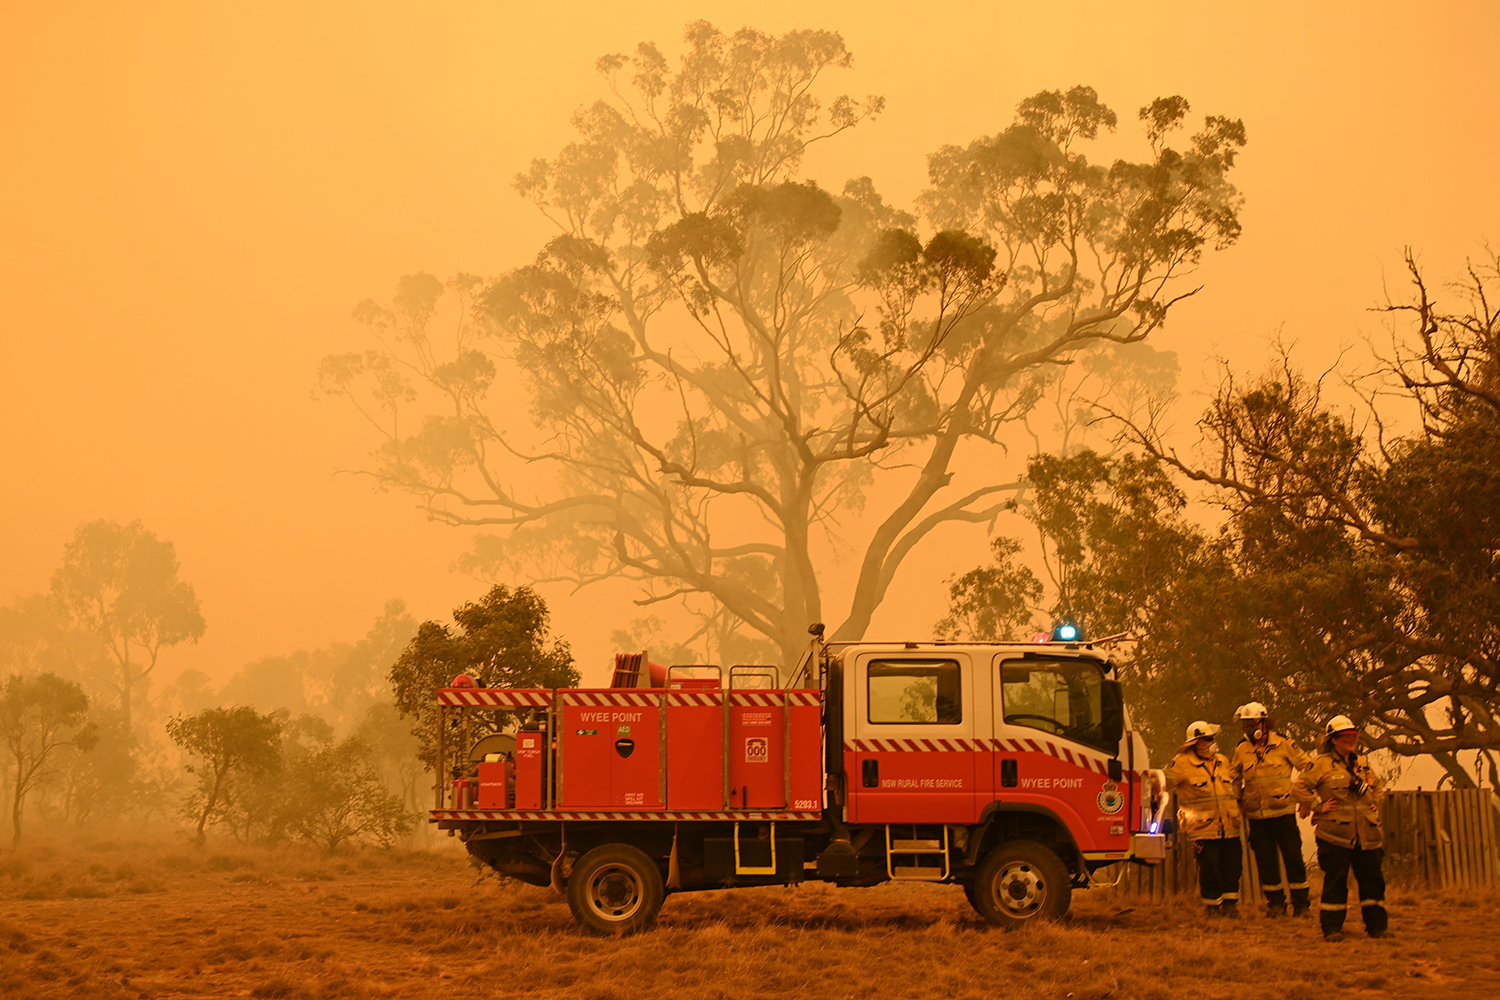 Firefighters protect a property from bushfires burning near the town of Bumbalong south of Canberra, Australia, on Feb. 1. PETER PARKS/AFP via Getty Images